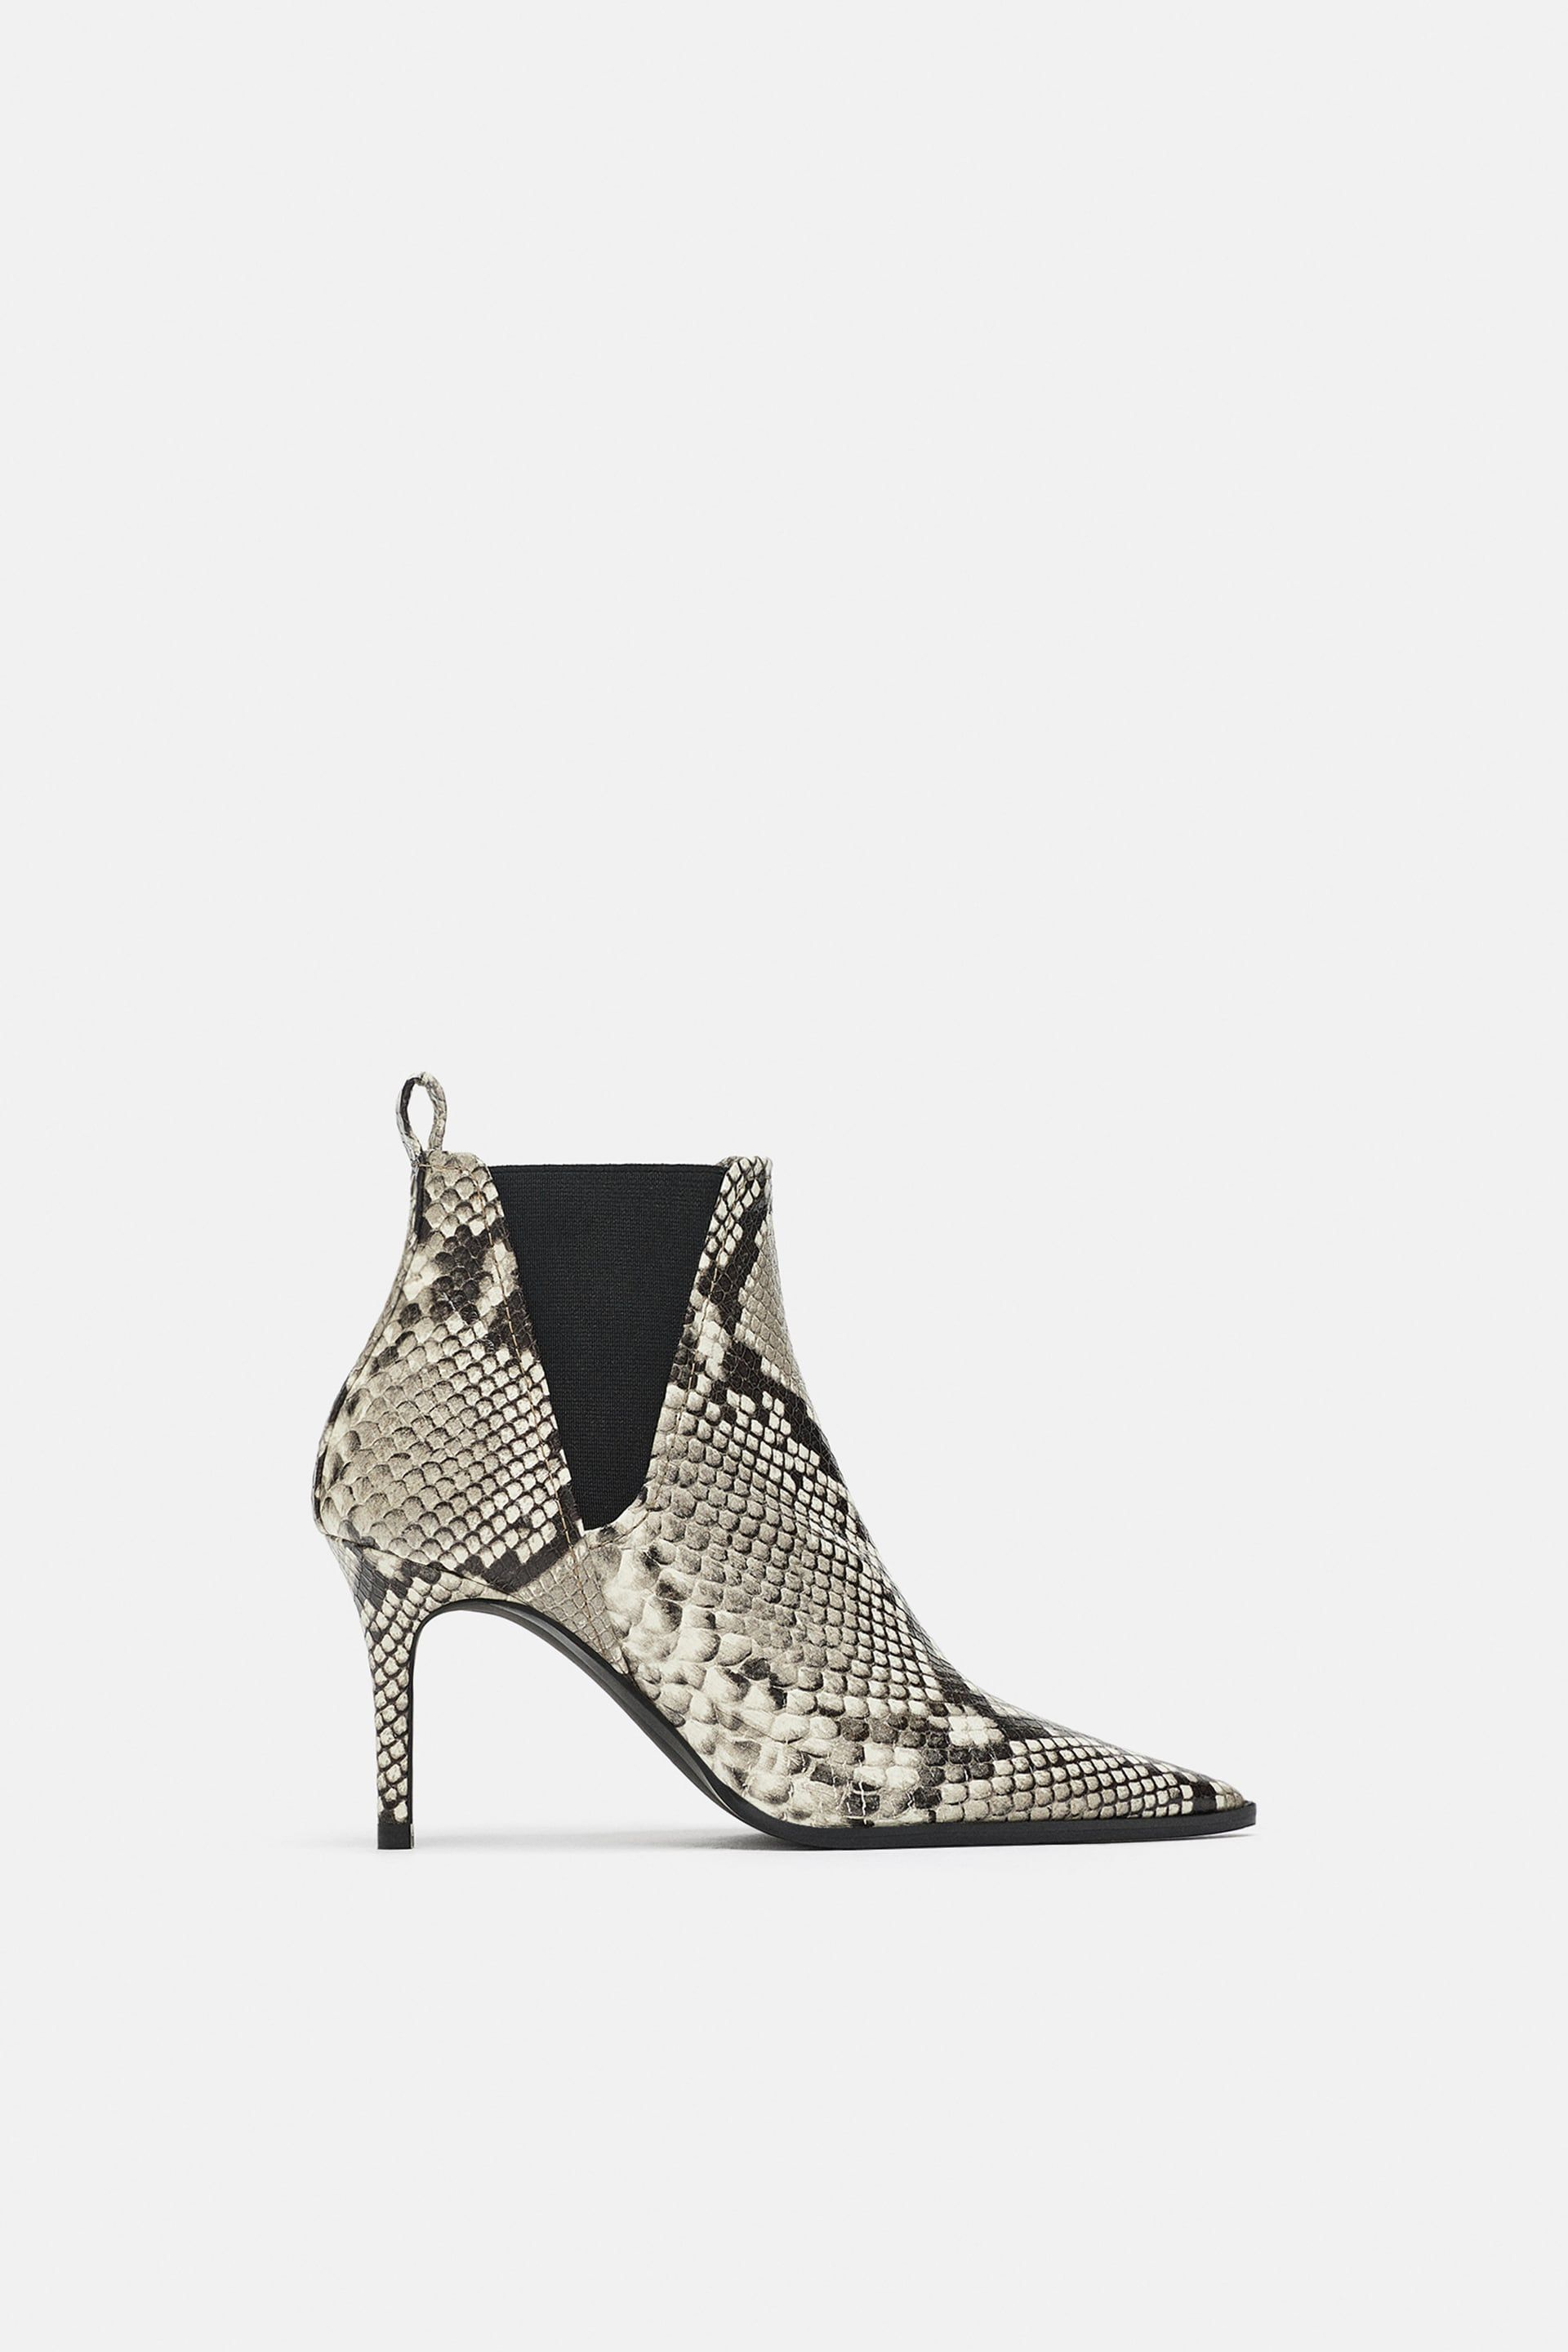 b22d4dd7739 Image 2 of SNAKESKIN PRINT HEELED LEATHER ANKLE BOOTS from Zara